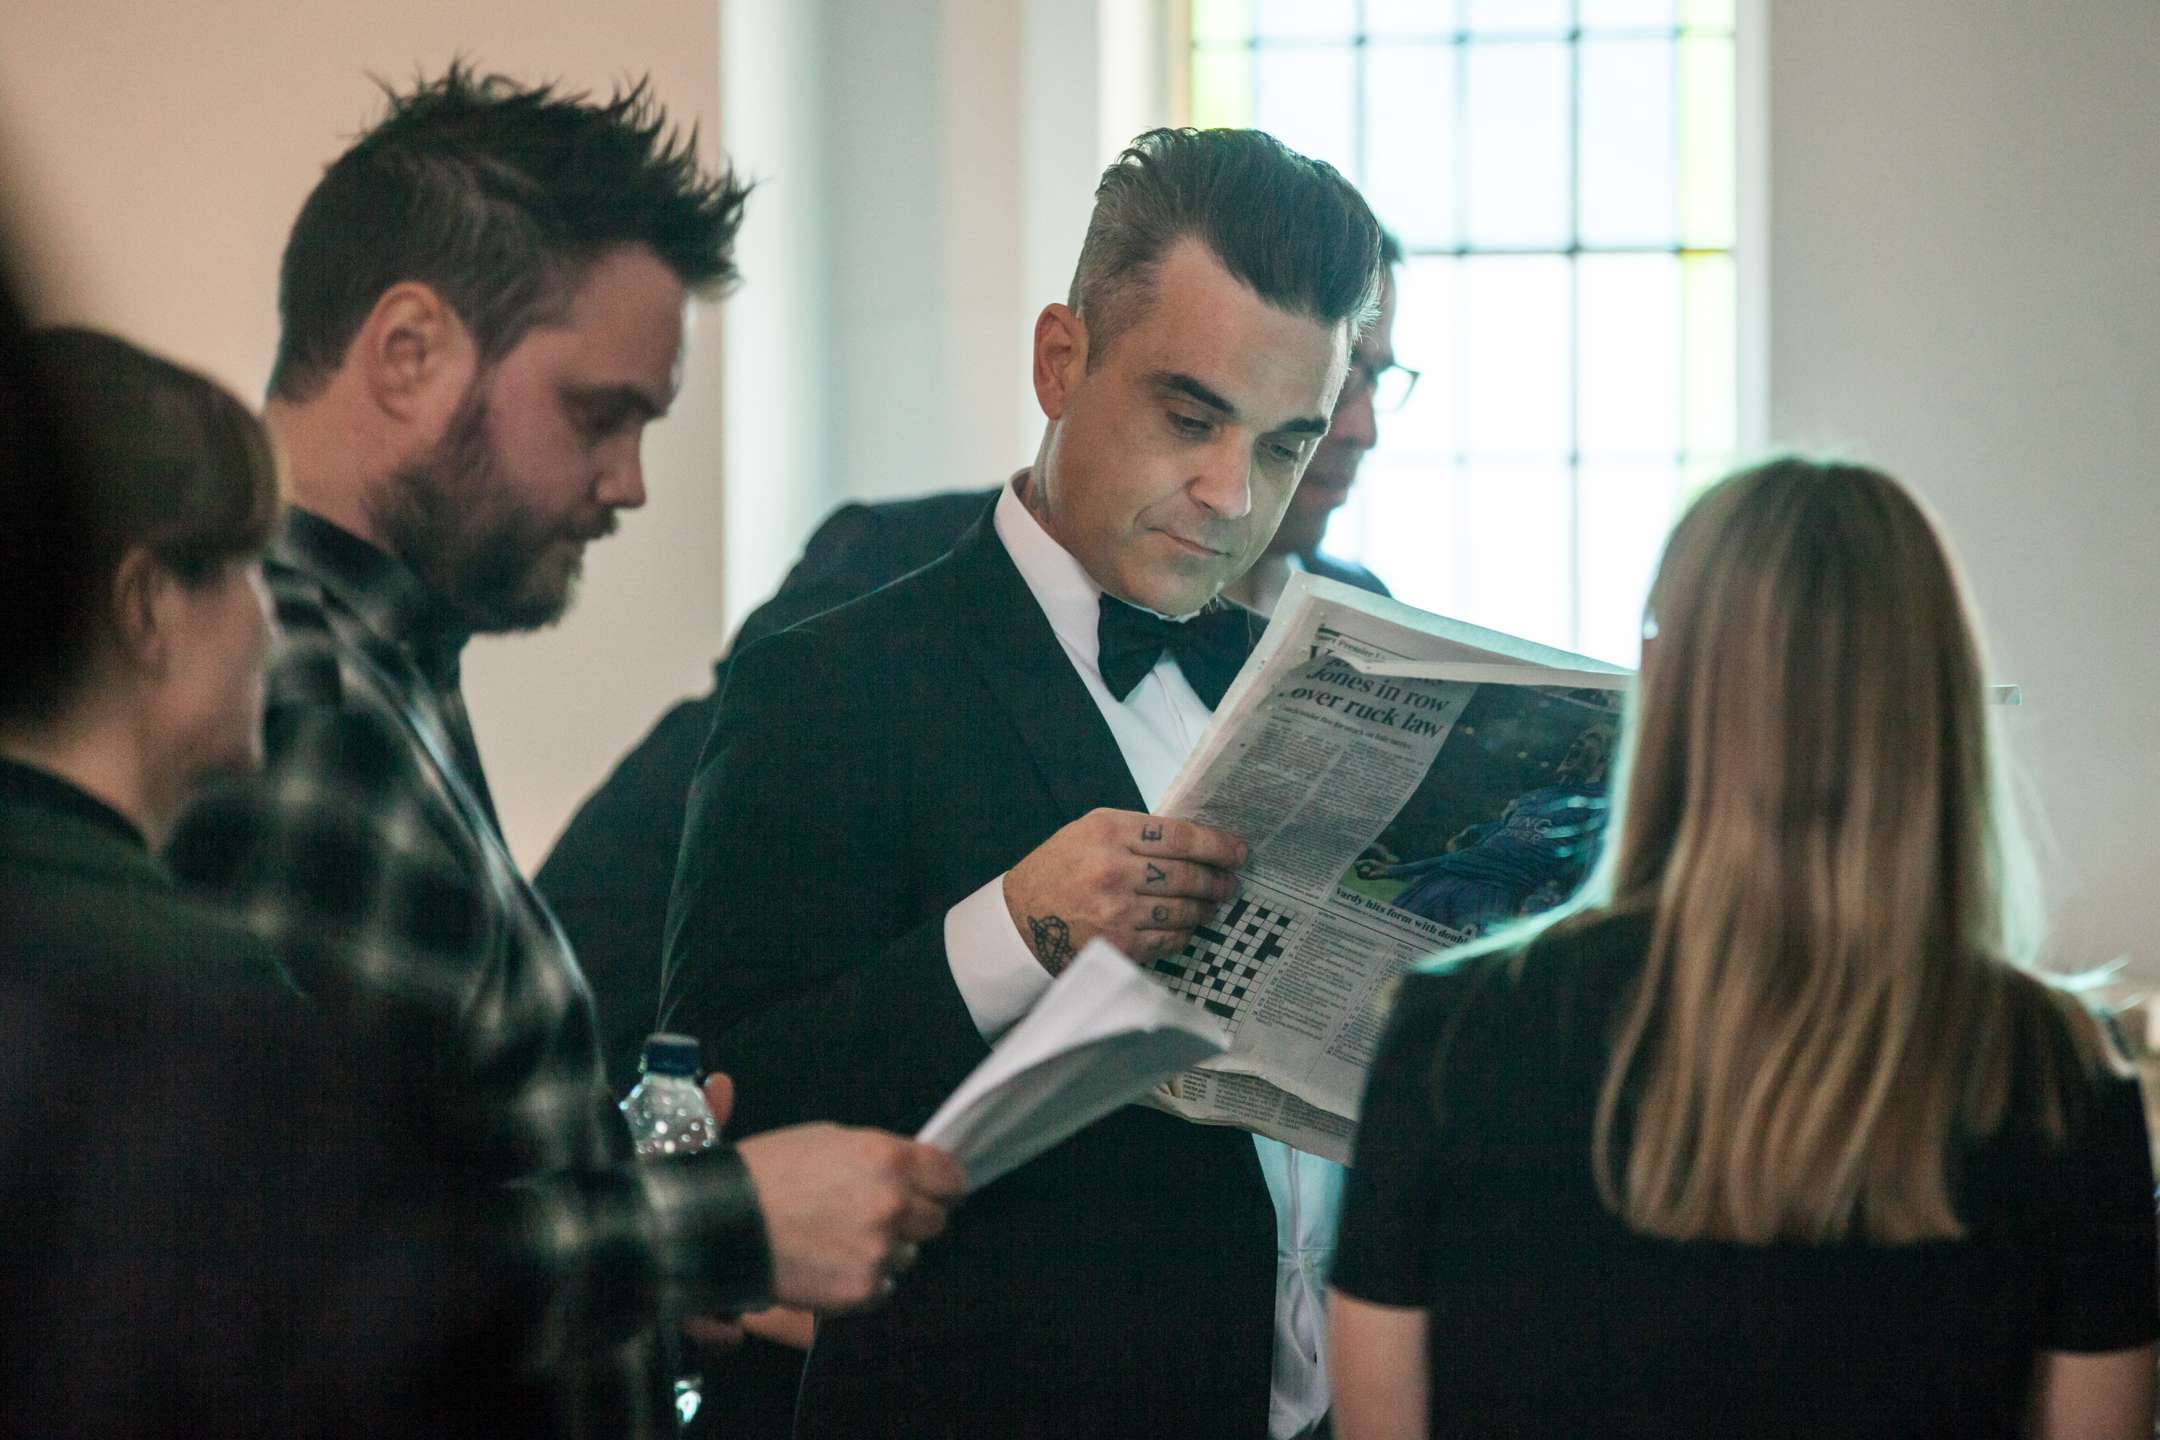 https://www.robbiewilliamslive.com/images/gallery/making-of/2017-07-07-cafe-royal-chris-hirschhaeuser/2017-07-07-cafe-royal-chris-hirschhaeuser-1.jpg